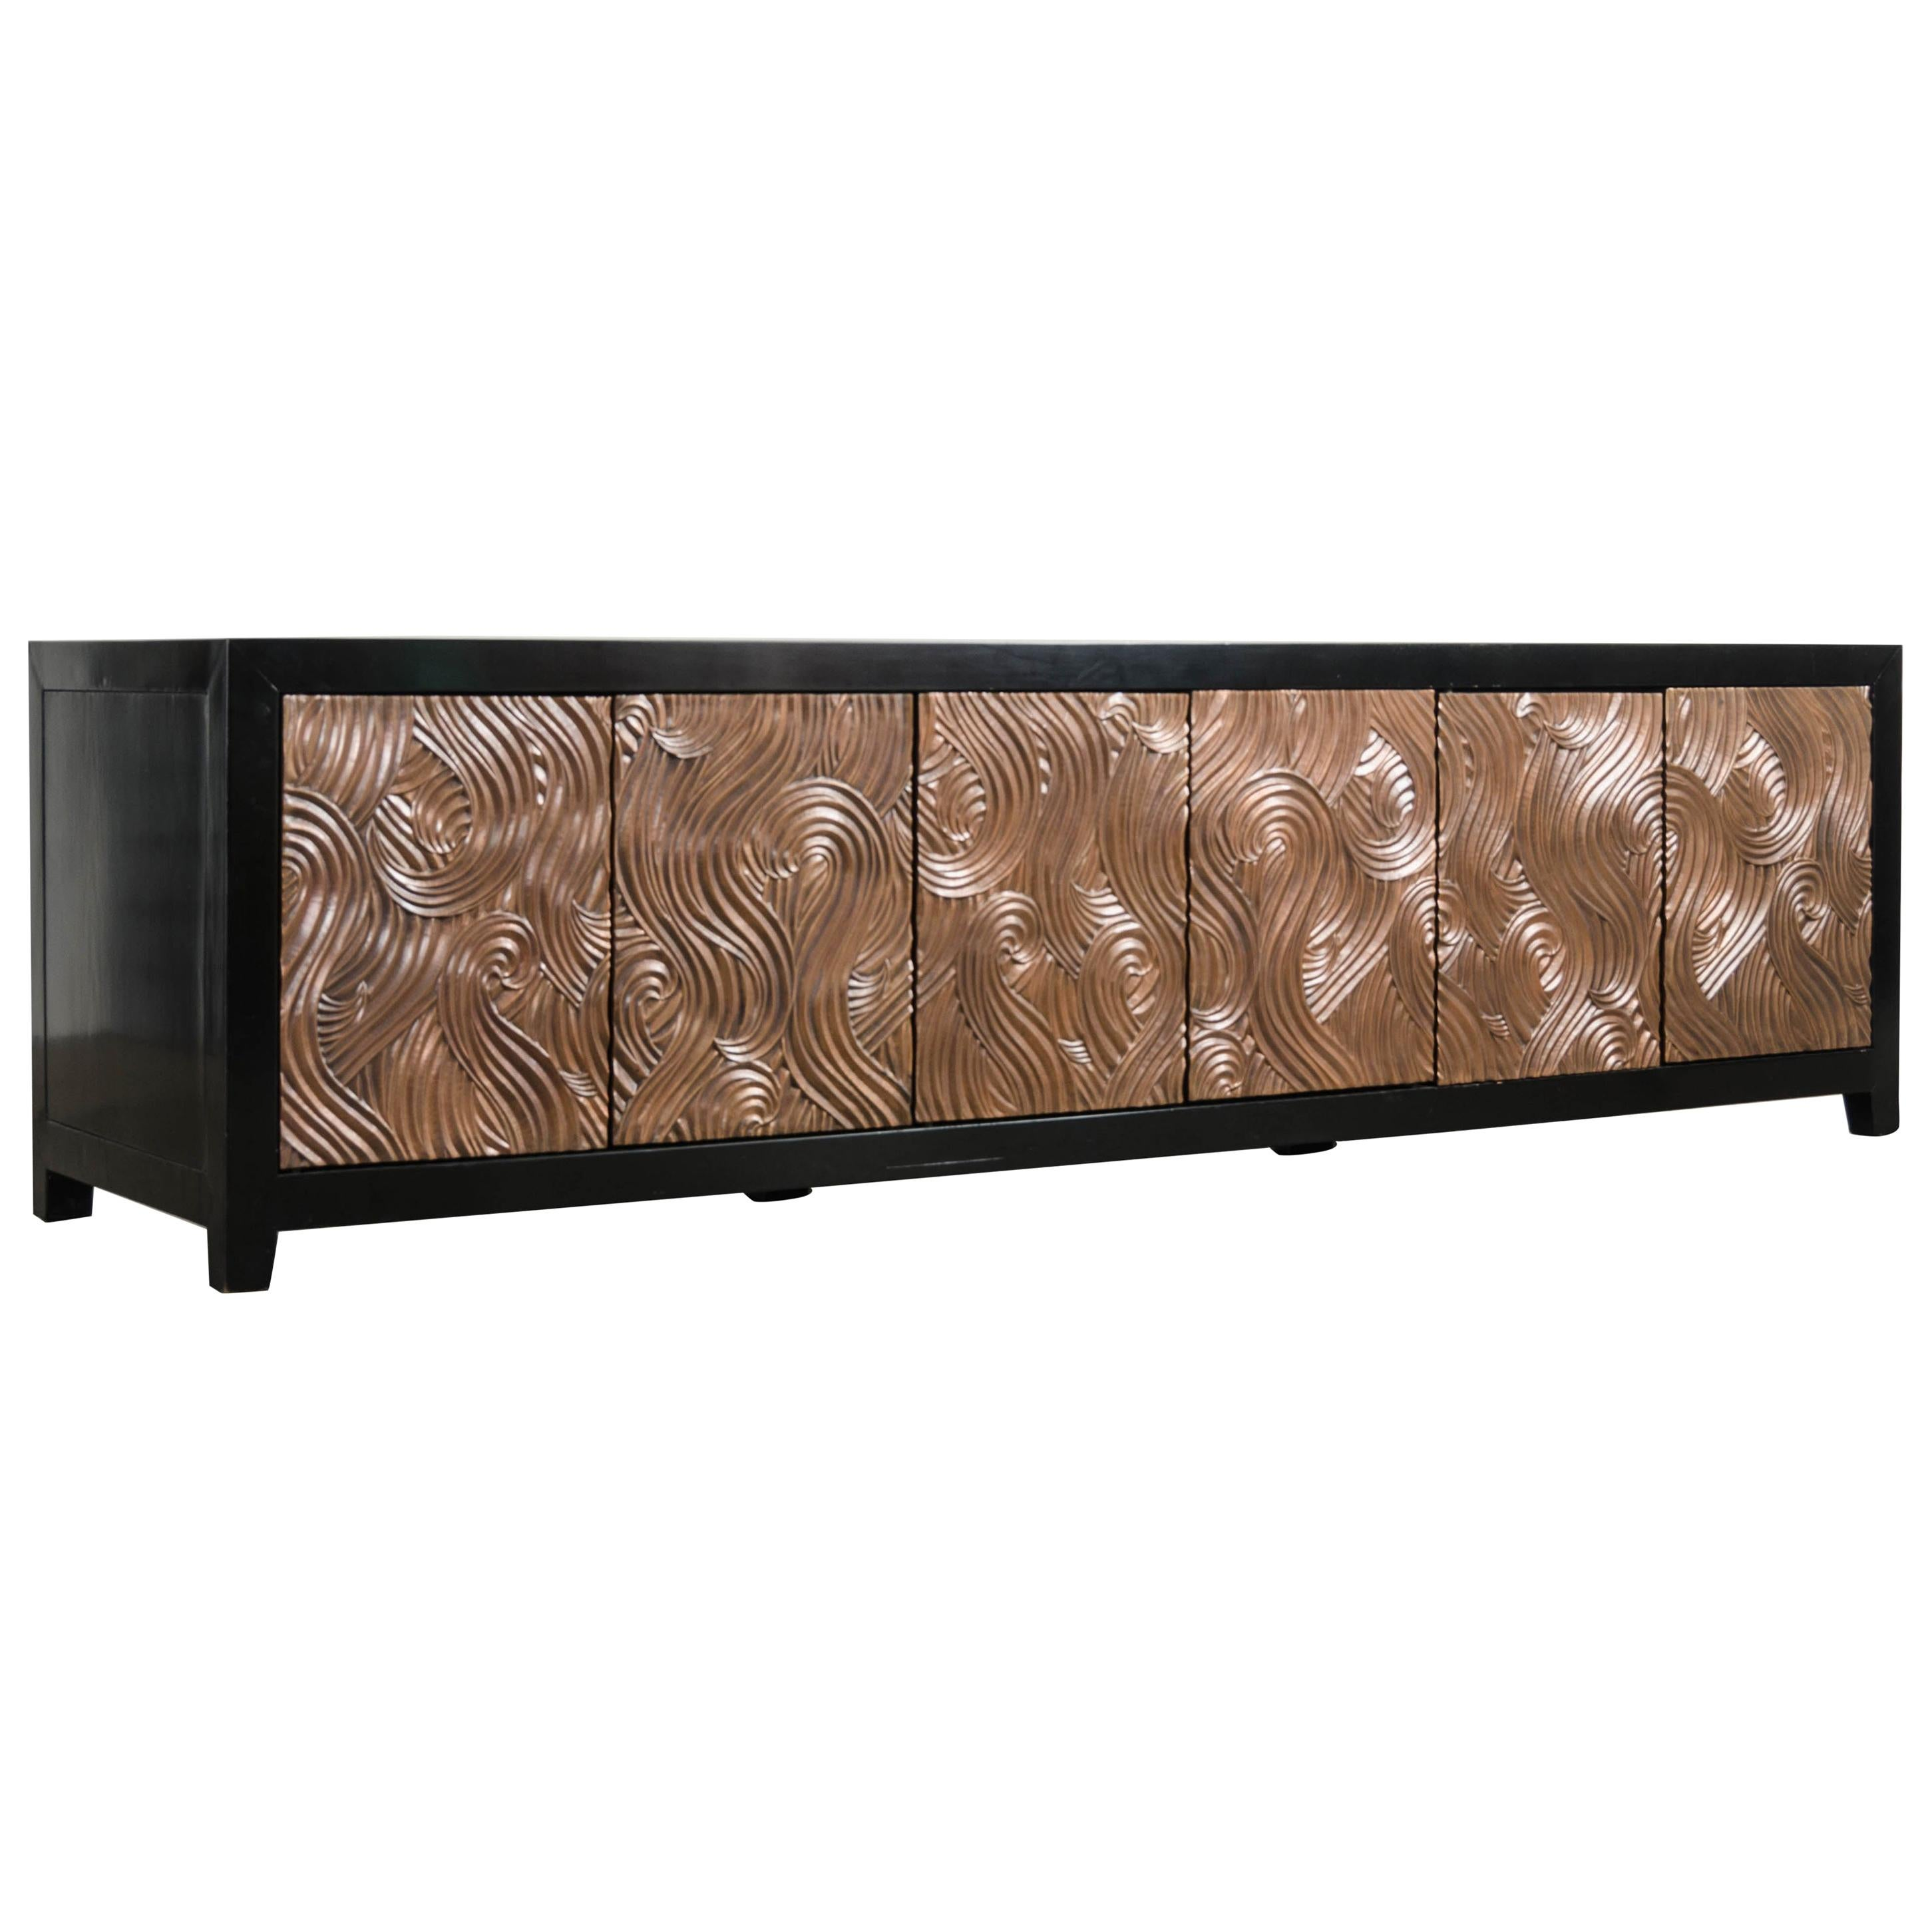 Dragon Swirl 6-Door Media Cabinet, by Robert Kuo, Hand Repousse, Limited Edition